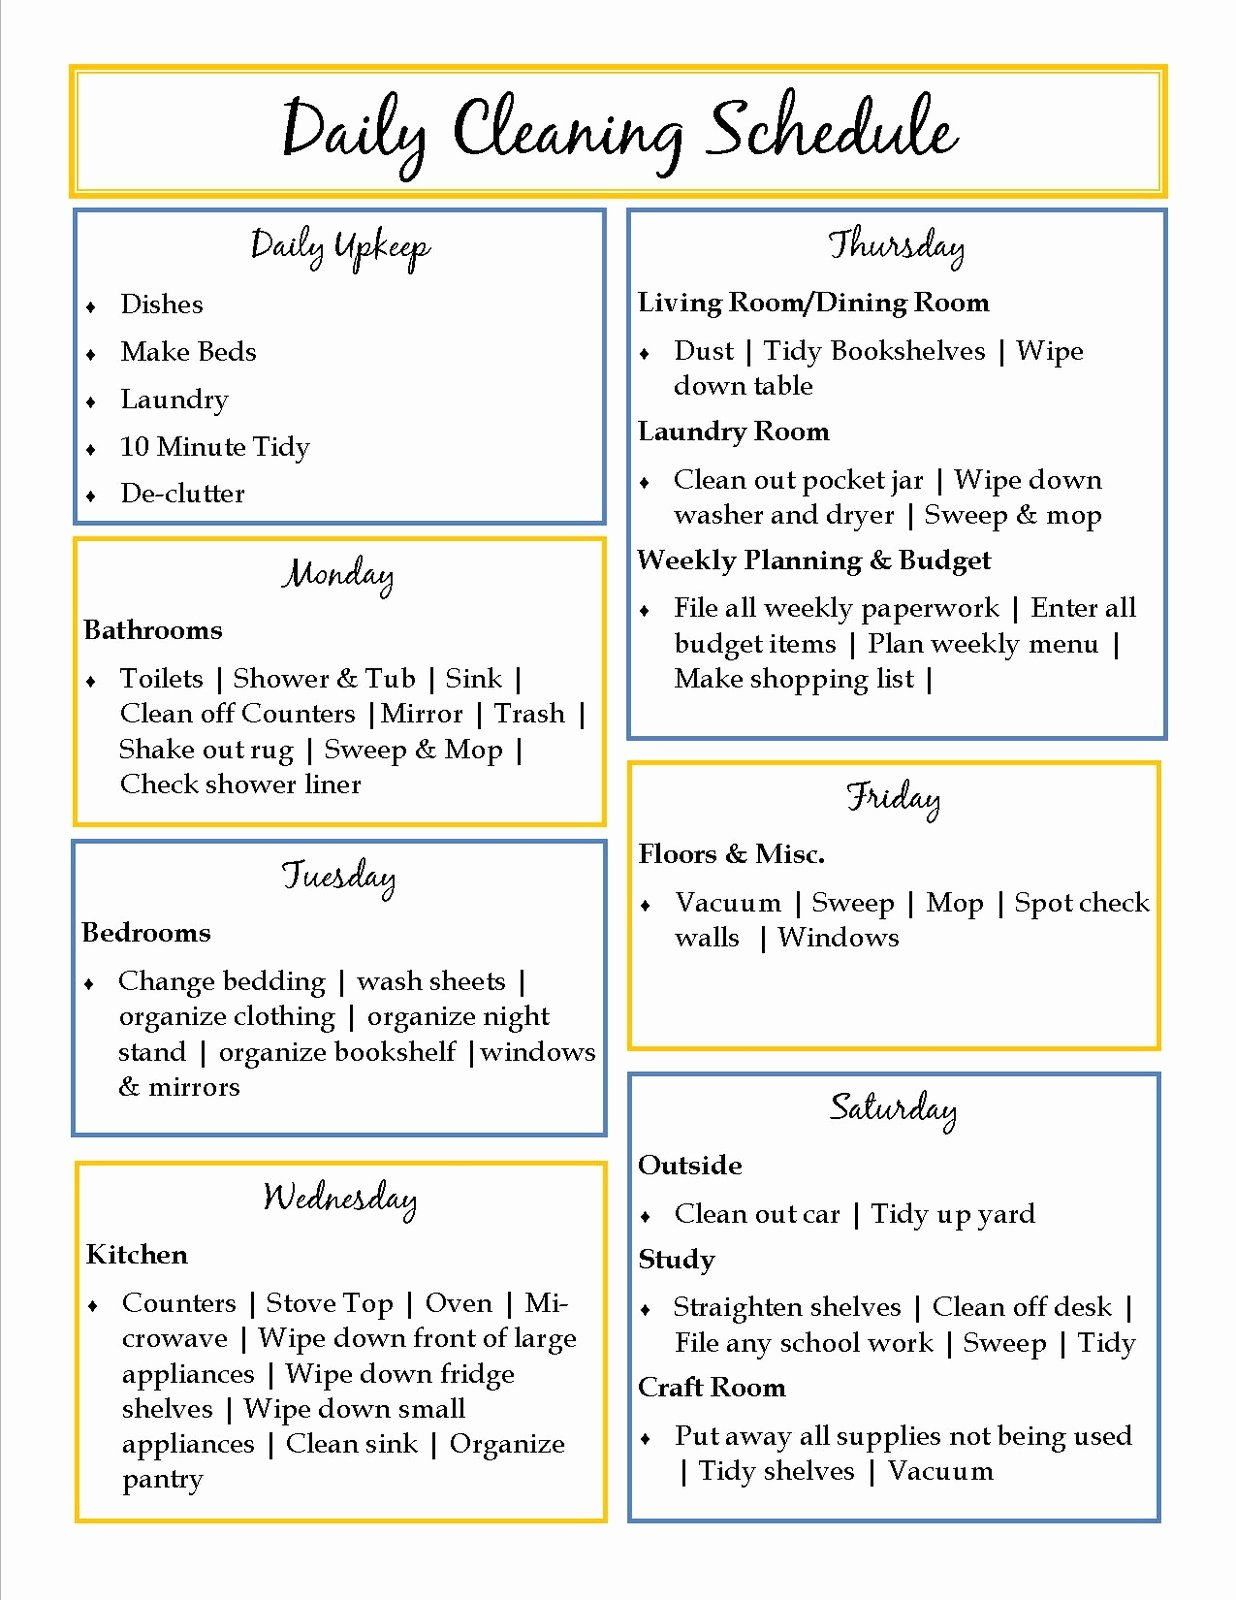 Deep Cleaning Checklist Template Elegant 40 Helpful House Cleaning Checklists for You